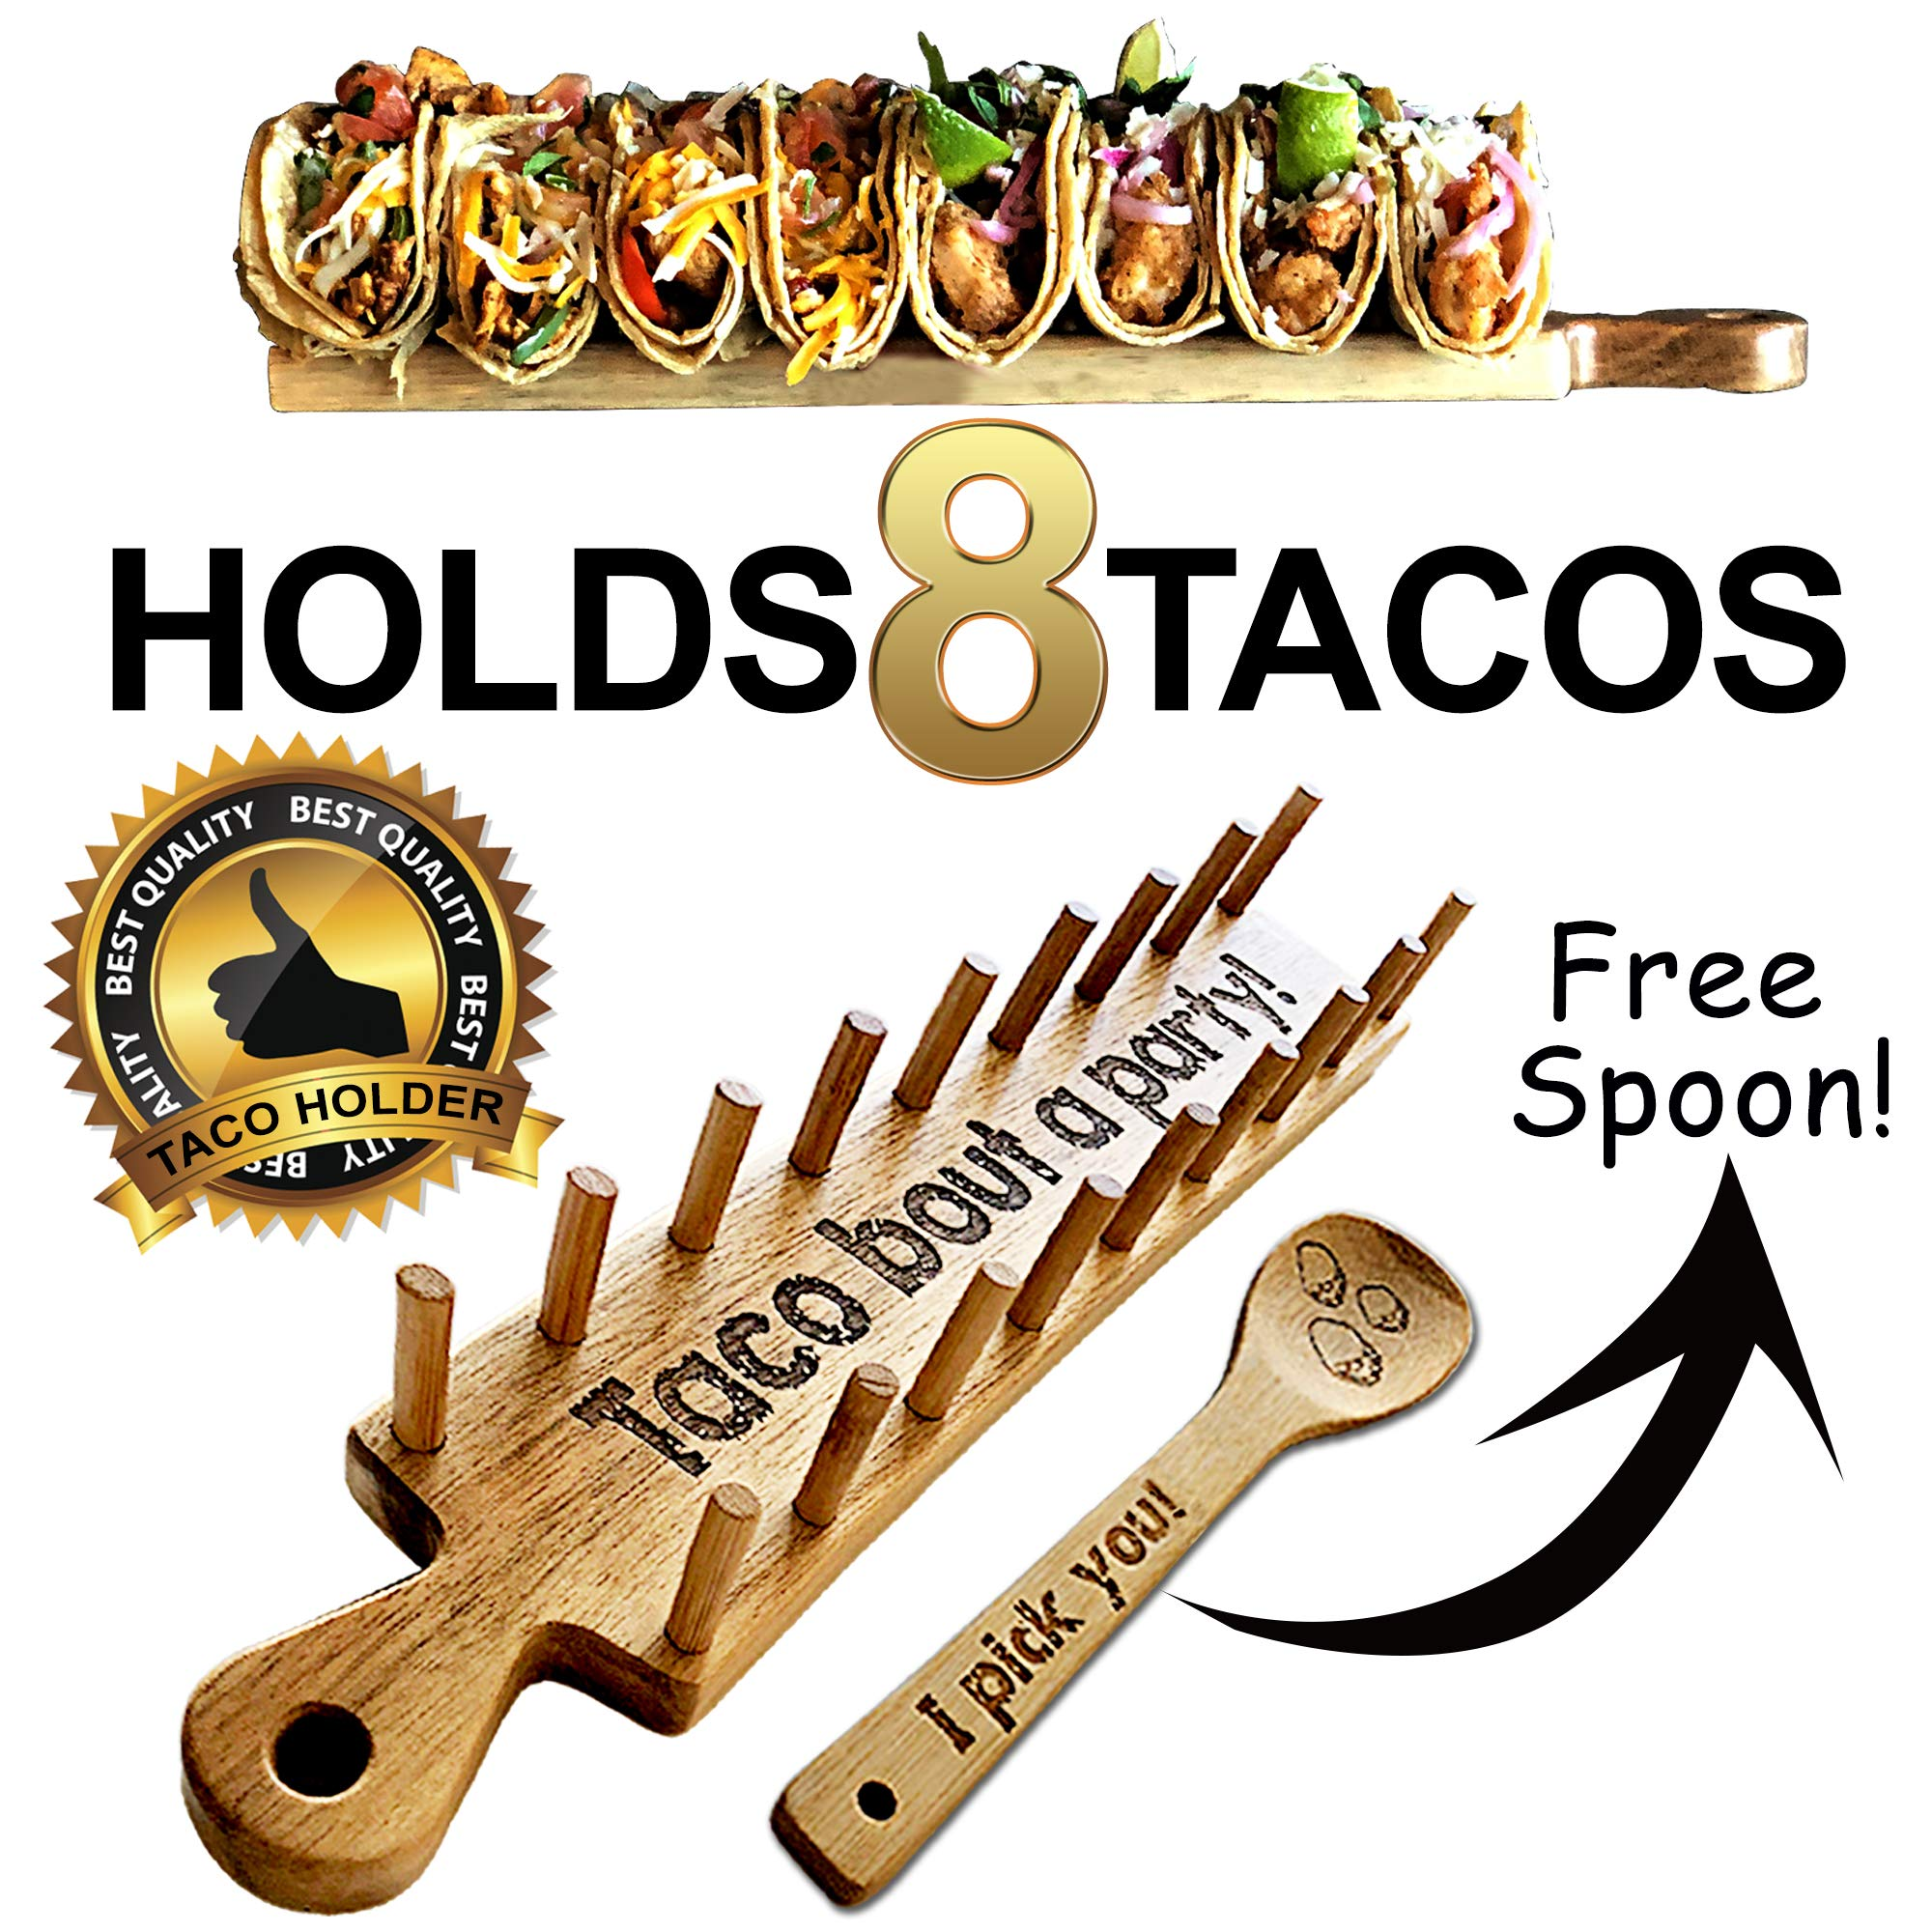 Wooden Taco Holder Tray Stand for Kitchen – Rack Set Holds 8 Soft or Hard Shell Tacos – Best for Adults & Kids Taco Train